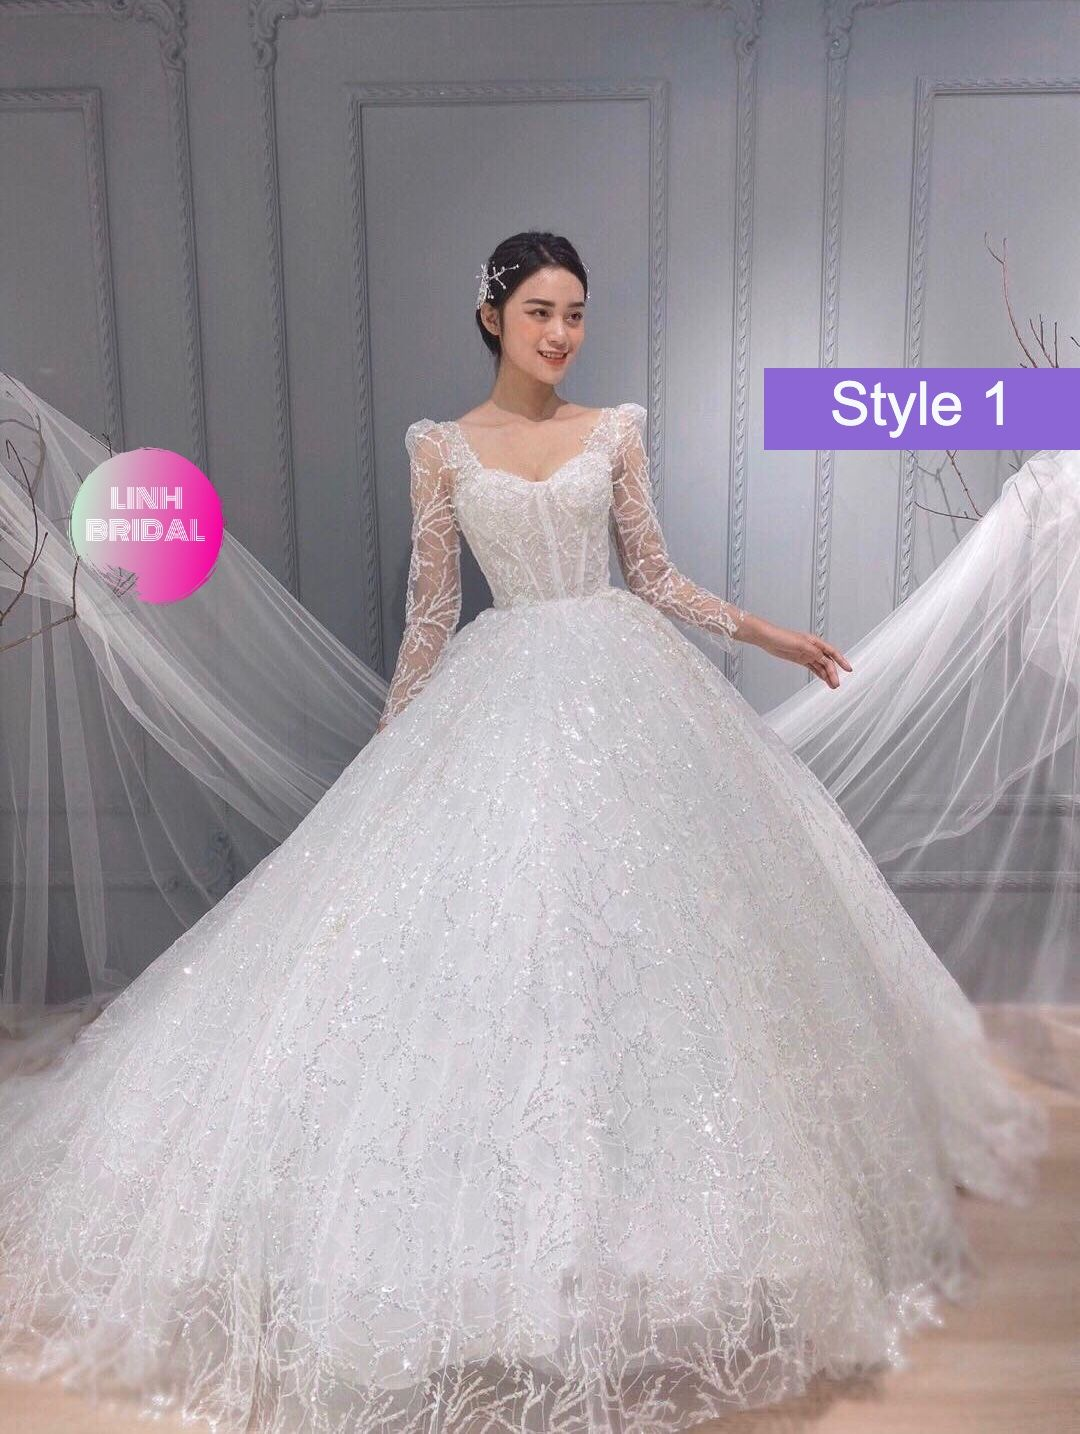 Snow White Sparkly Long Sleeves Ball Gown Wedding Dress With Train And Glitter Tulle Various Styles Long Sleeve Ball Gown Wedding Dress Long Sleeve Ball Gowns Glitter Wedding Dress [ 1434 x 1080 Pixel ]